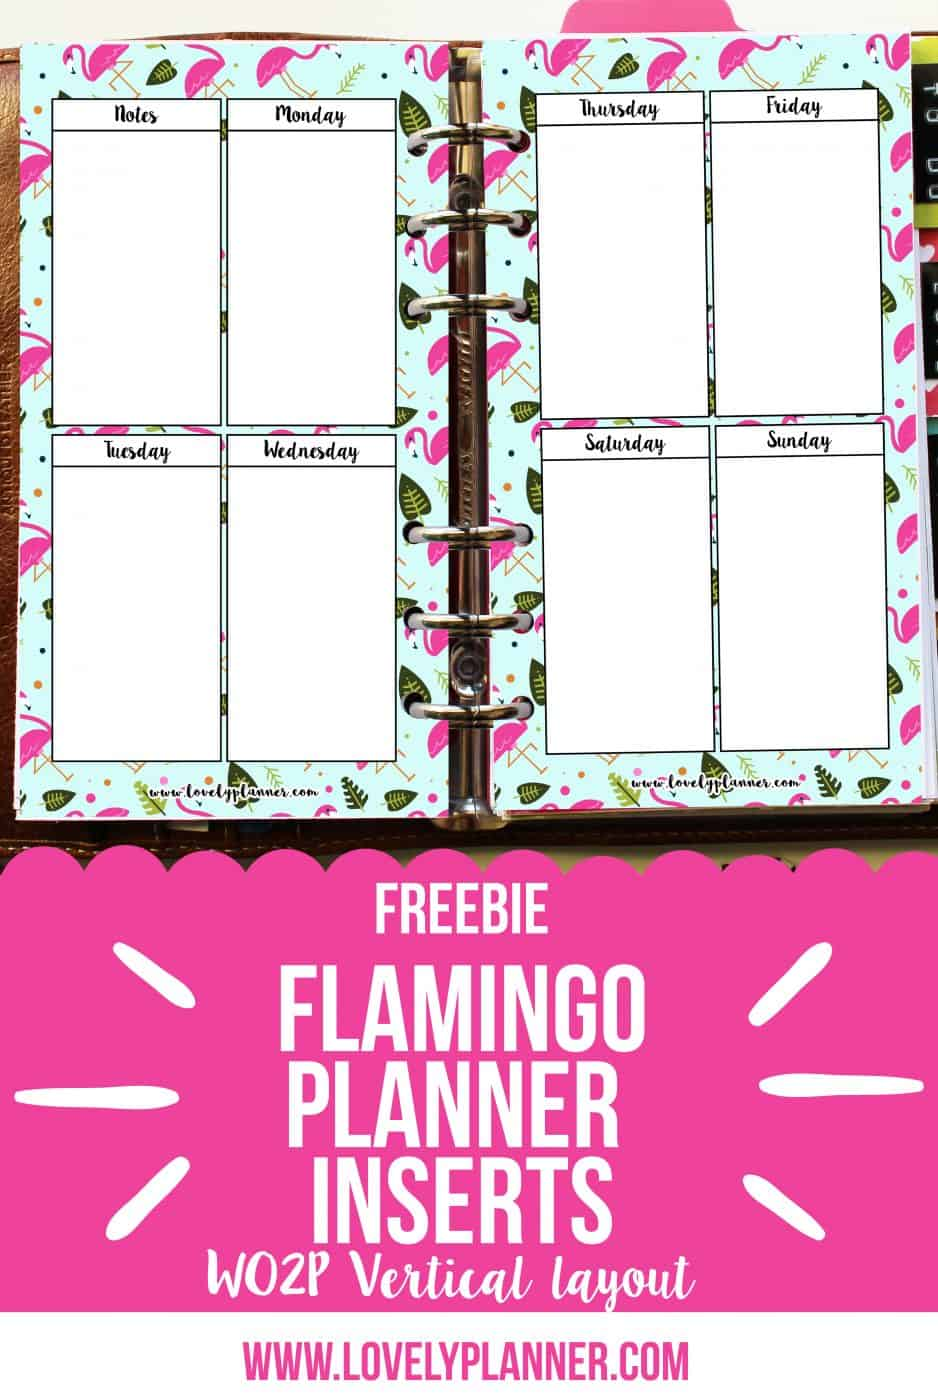 freebie flamingo WO2P vertical layout personal planner header